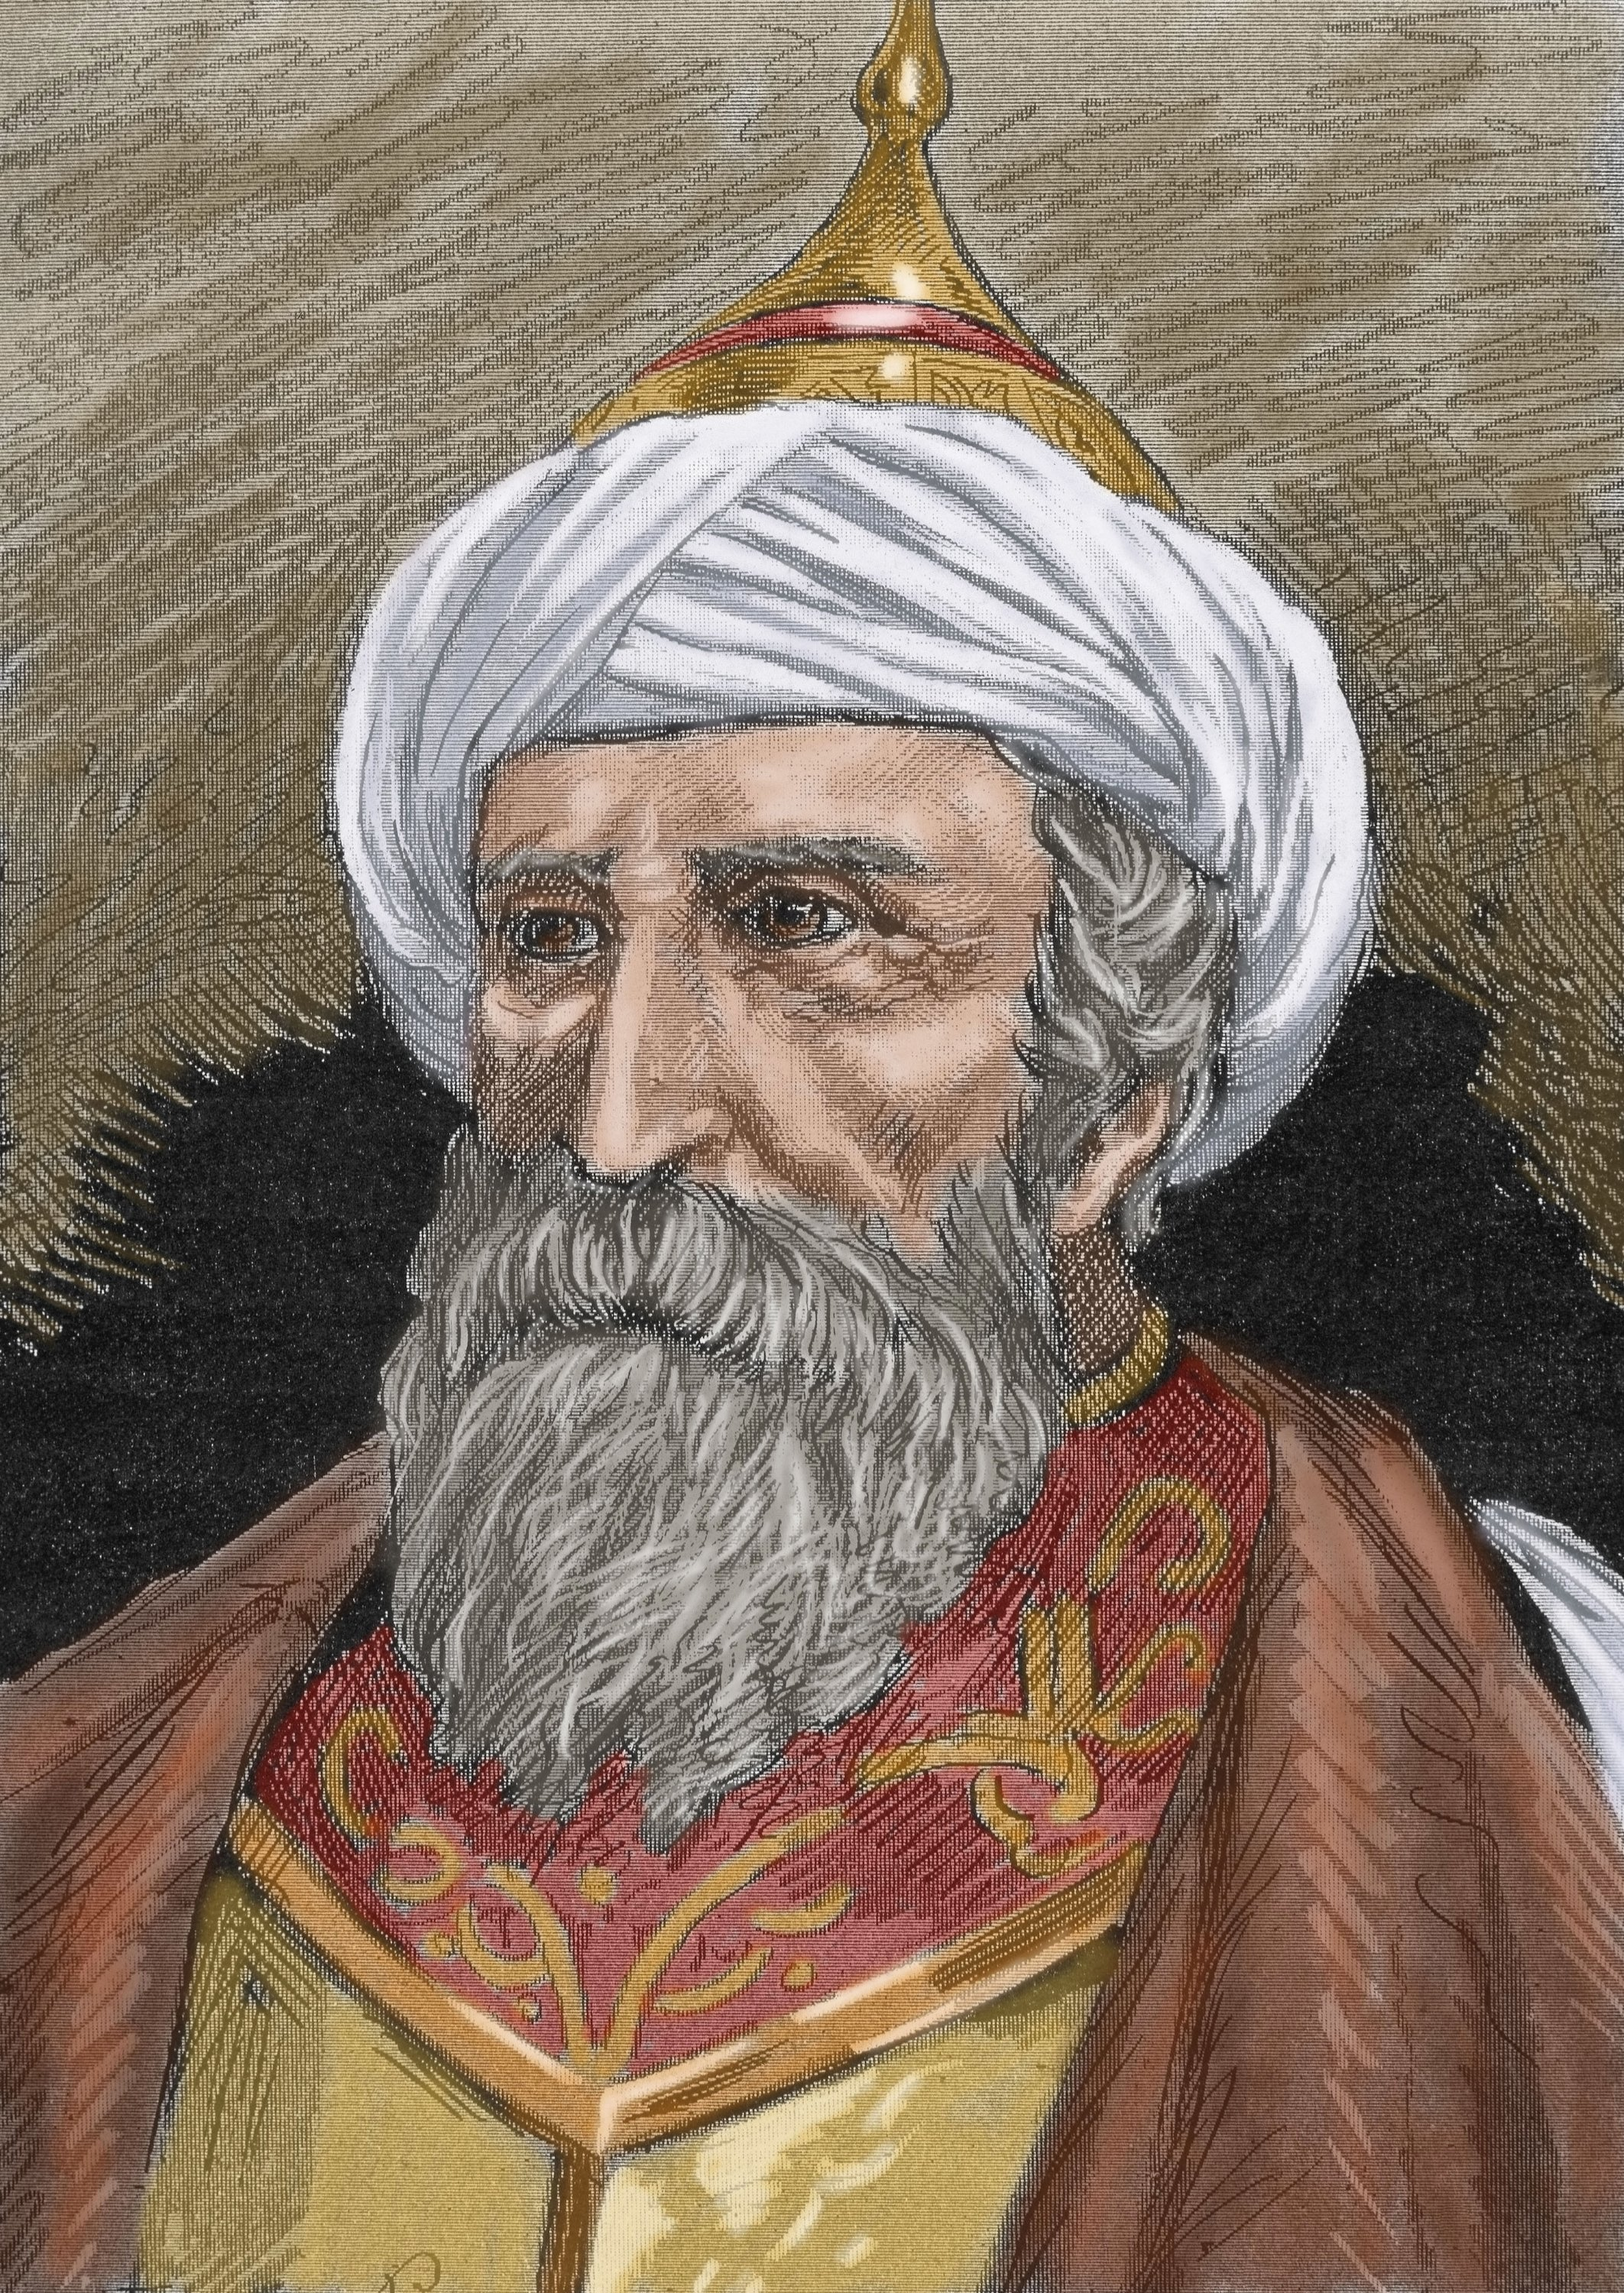 A portrait of Ottoman statesman and naval officer Muezzinzade Ali Pasha. (Getty Images)